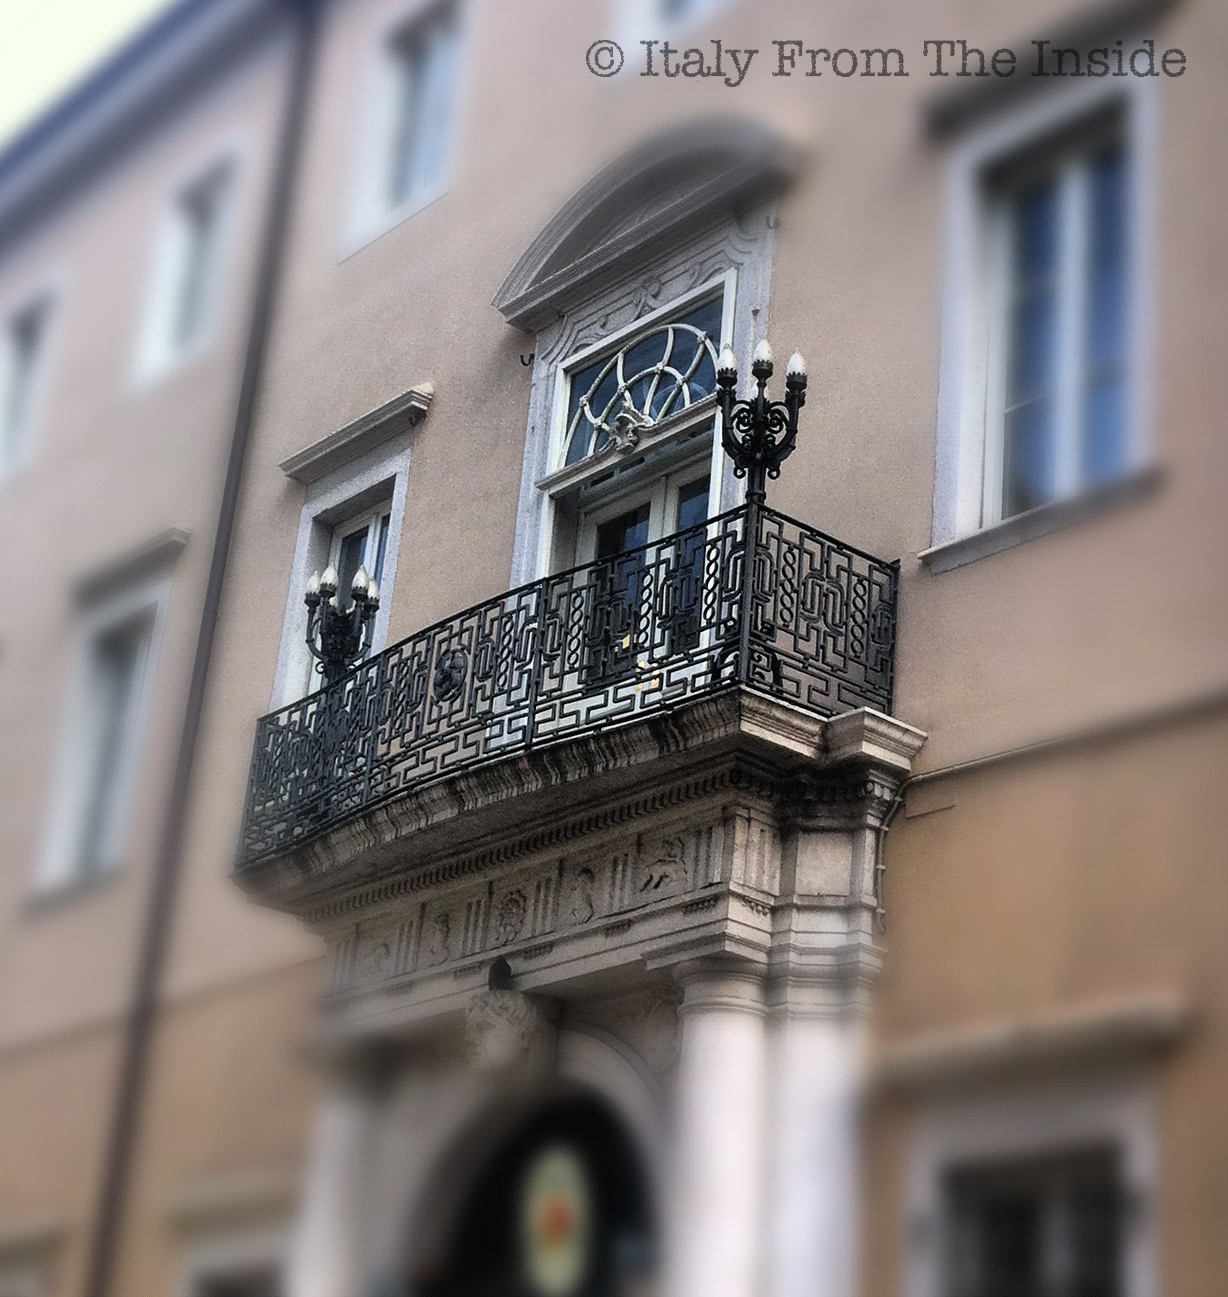 Wrought iron balcony- Italy from the Inside